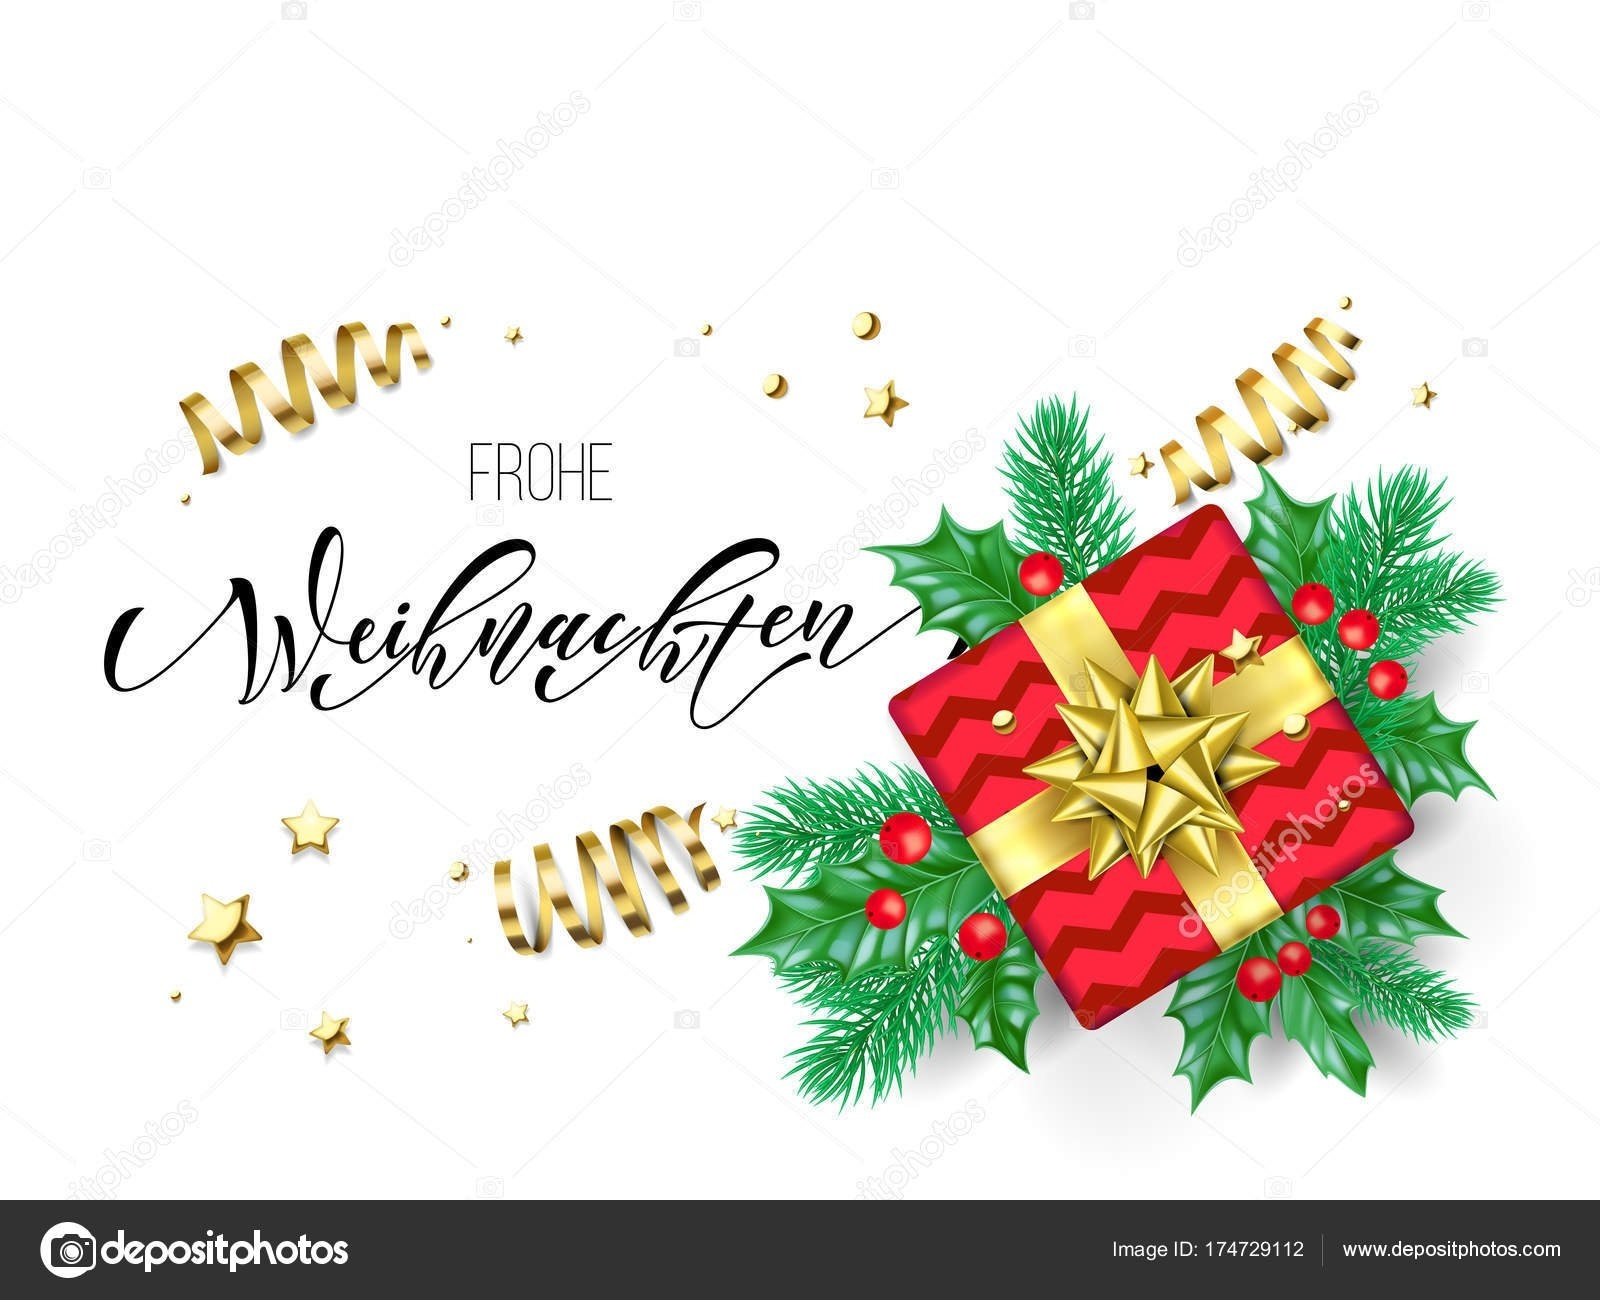 Free Printable German Christmas Cards – Festival Collections - Free Printable German Christmas Cards